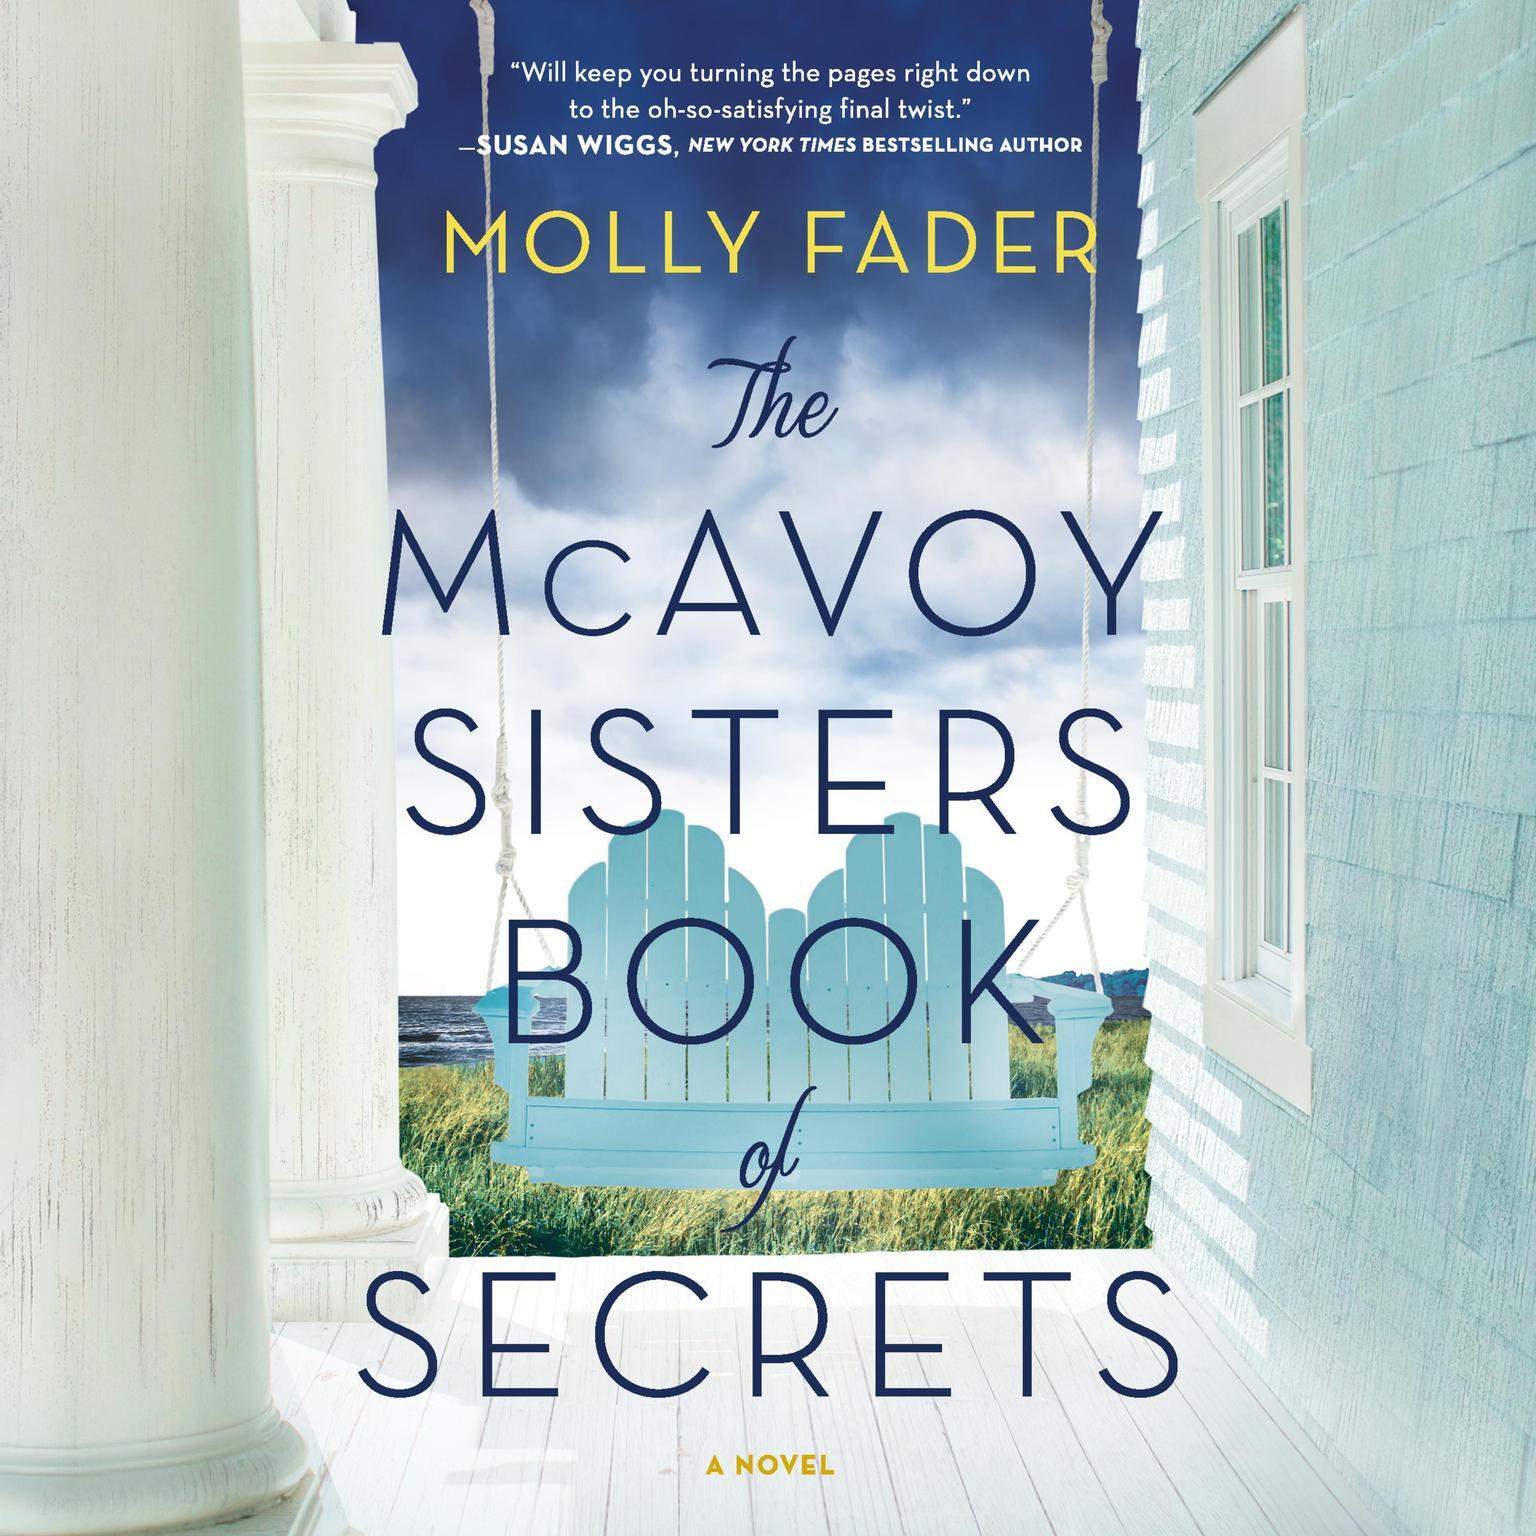 Printable The McAvoy Sisters Book of Secrets Audiobook Cover Art